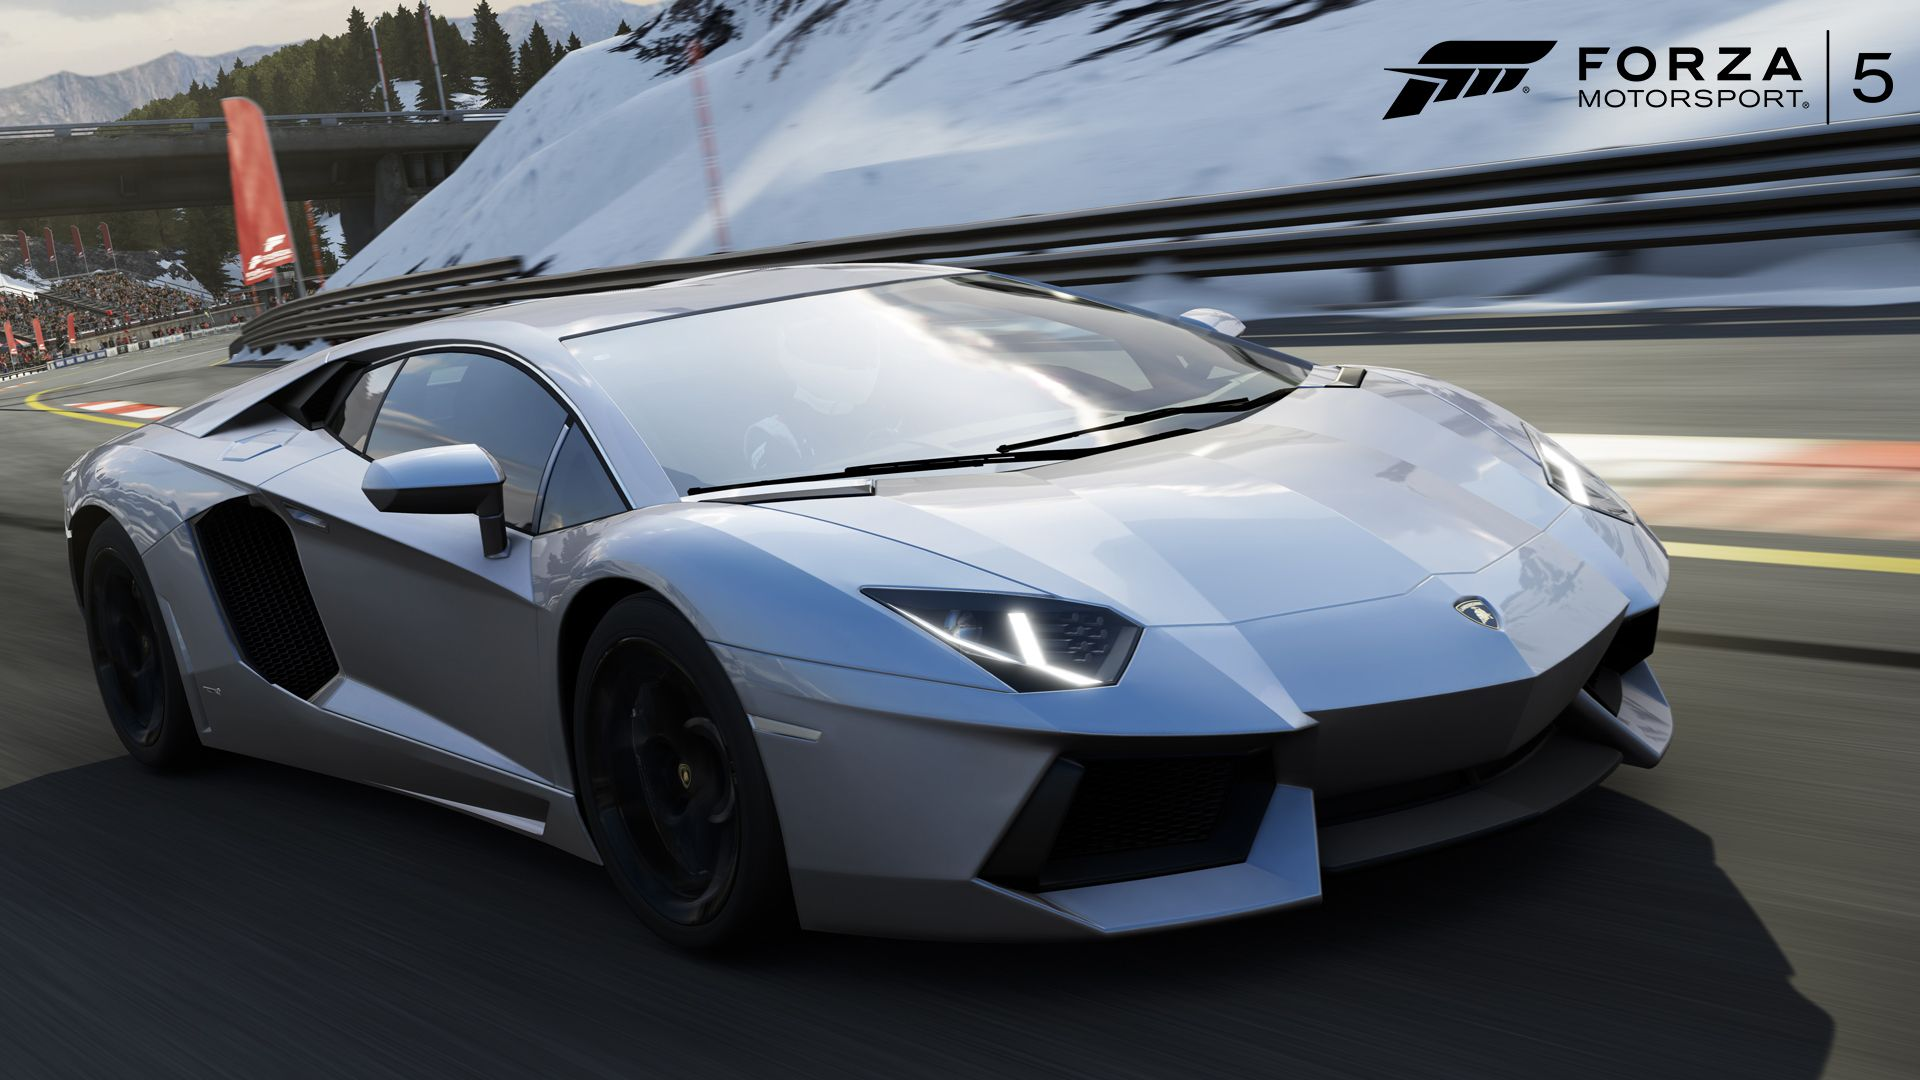 Forza Motorsport Cars HD Wallpaper Wallpapers Pinterest - Cool xbox cars